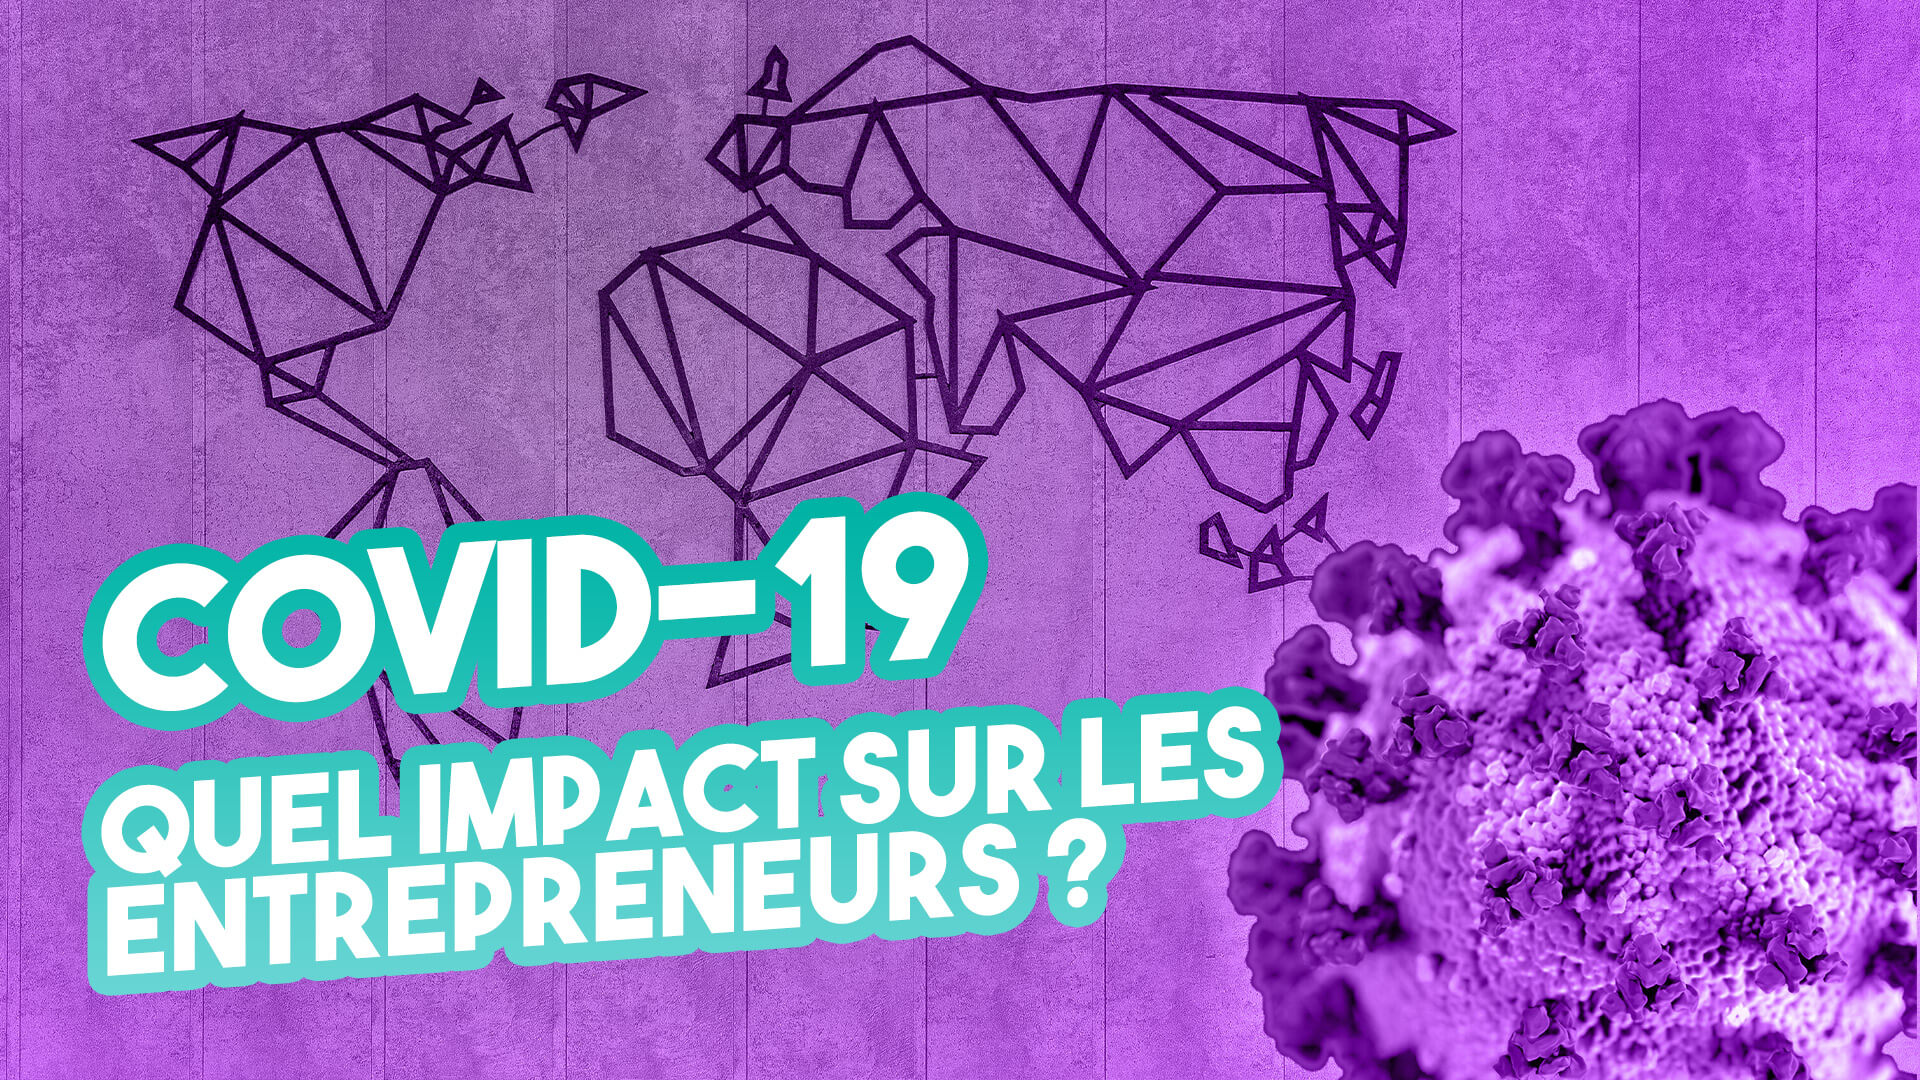 COVID-19 – Quel impact sur les entrepreneurs, une opportunité marketing digital ?